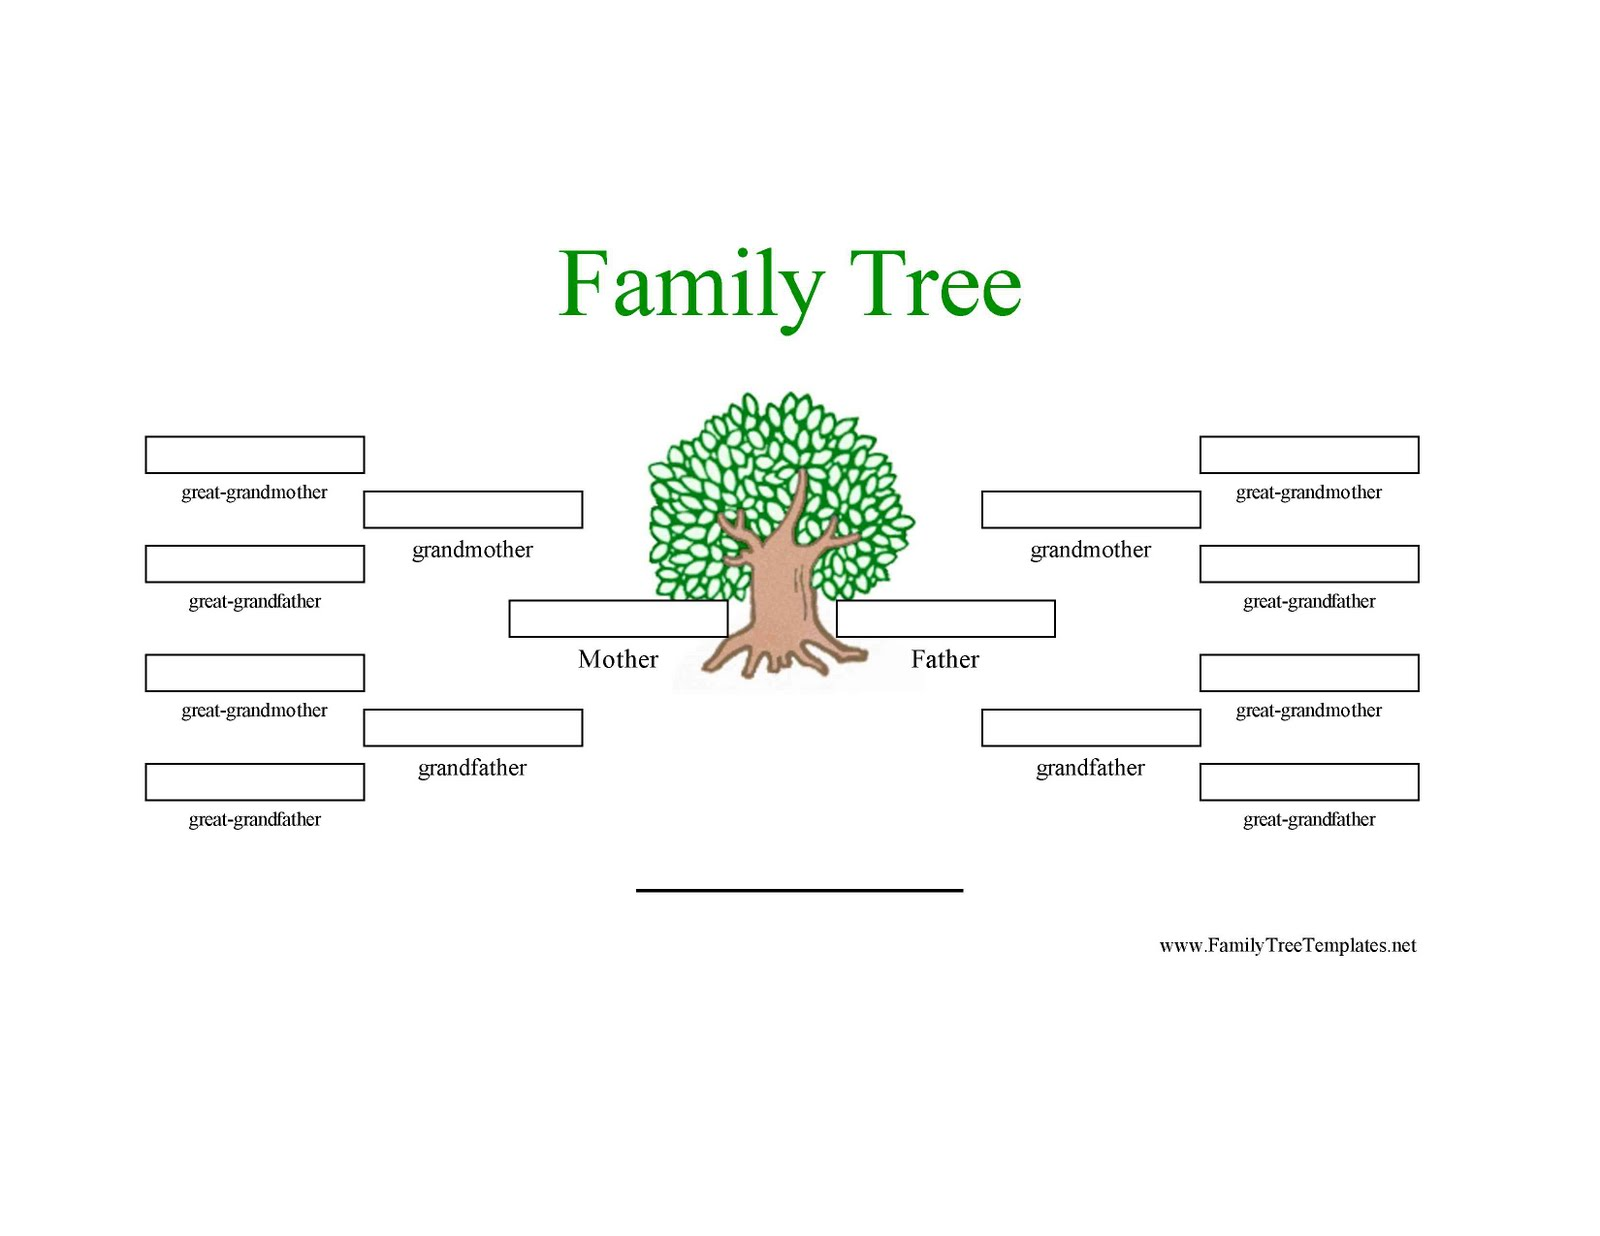 3 generation family tree template with siblings 11 things for 11 generation family tree template